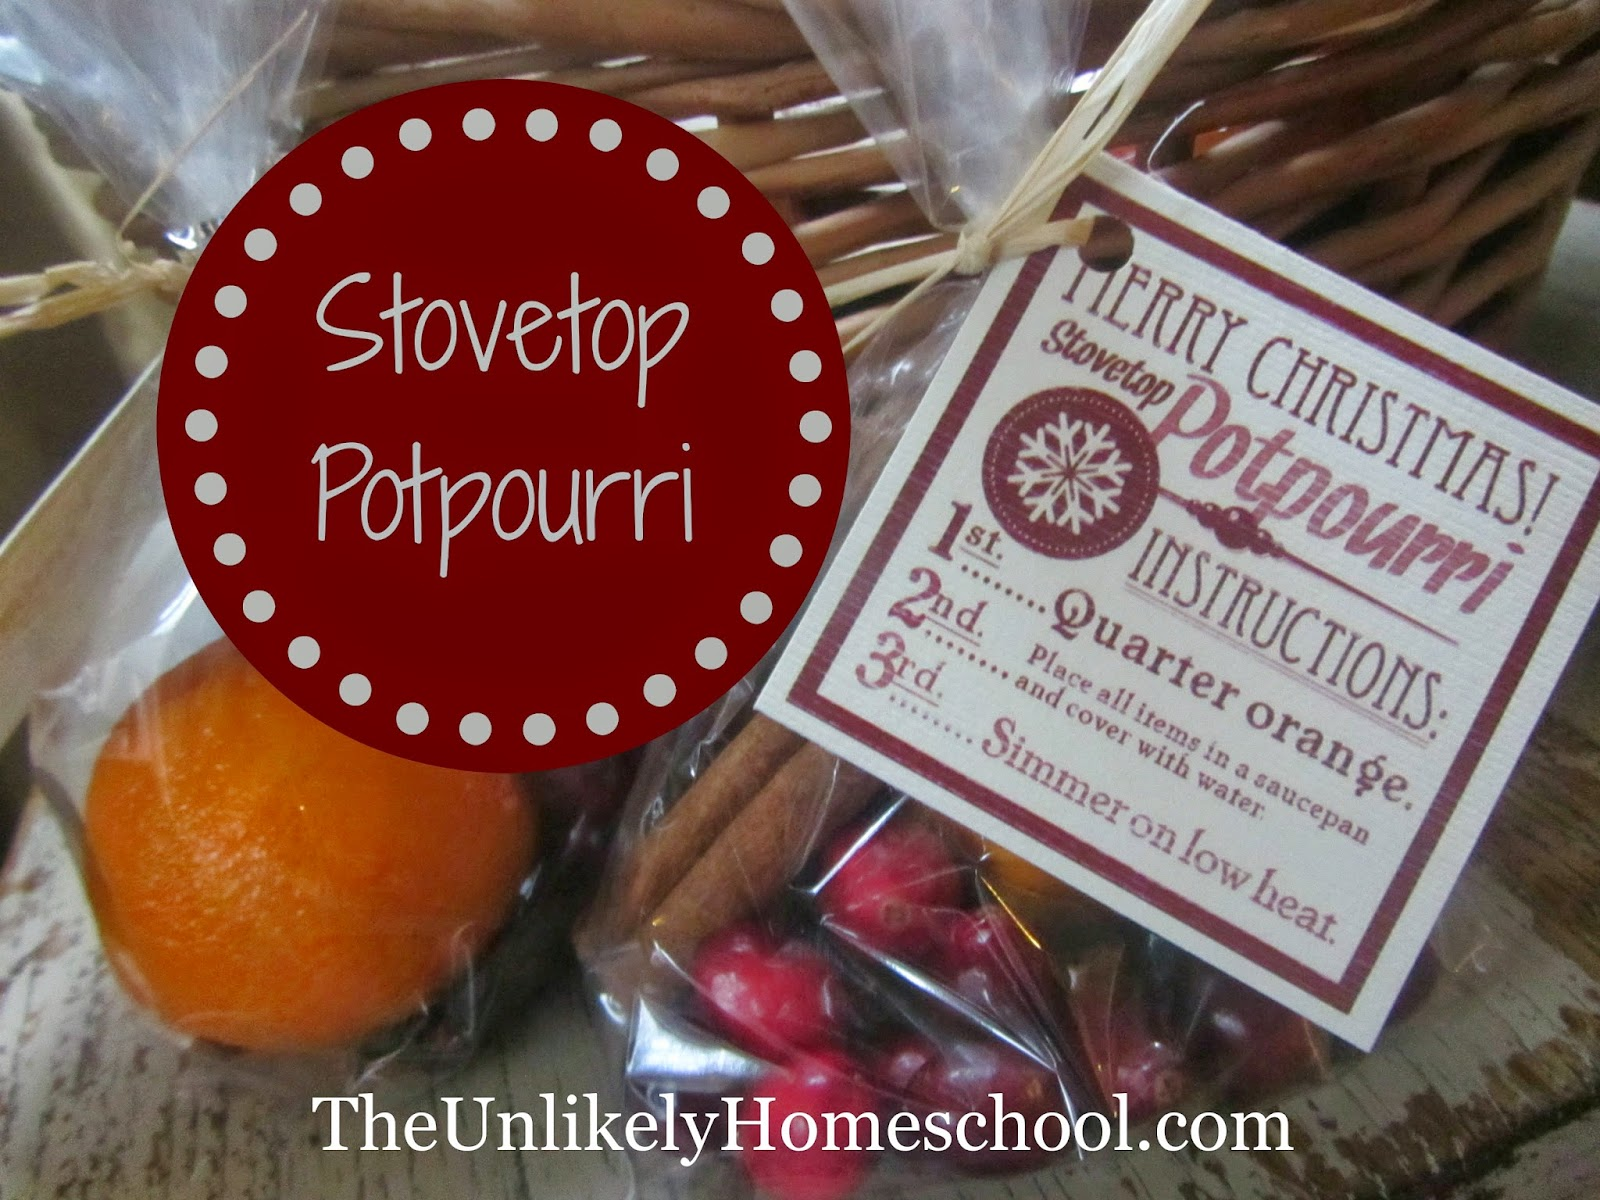 Stovetop Potpourri with Printable Tag. Makes for a great gift for Sunday School teachers or club volunteers {The Unlikely Homeschool}